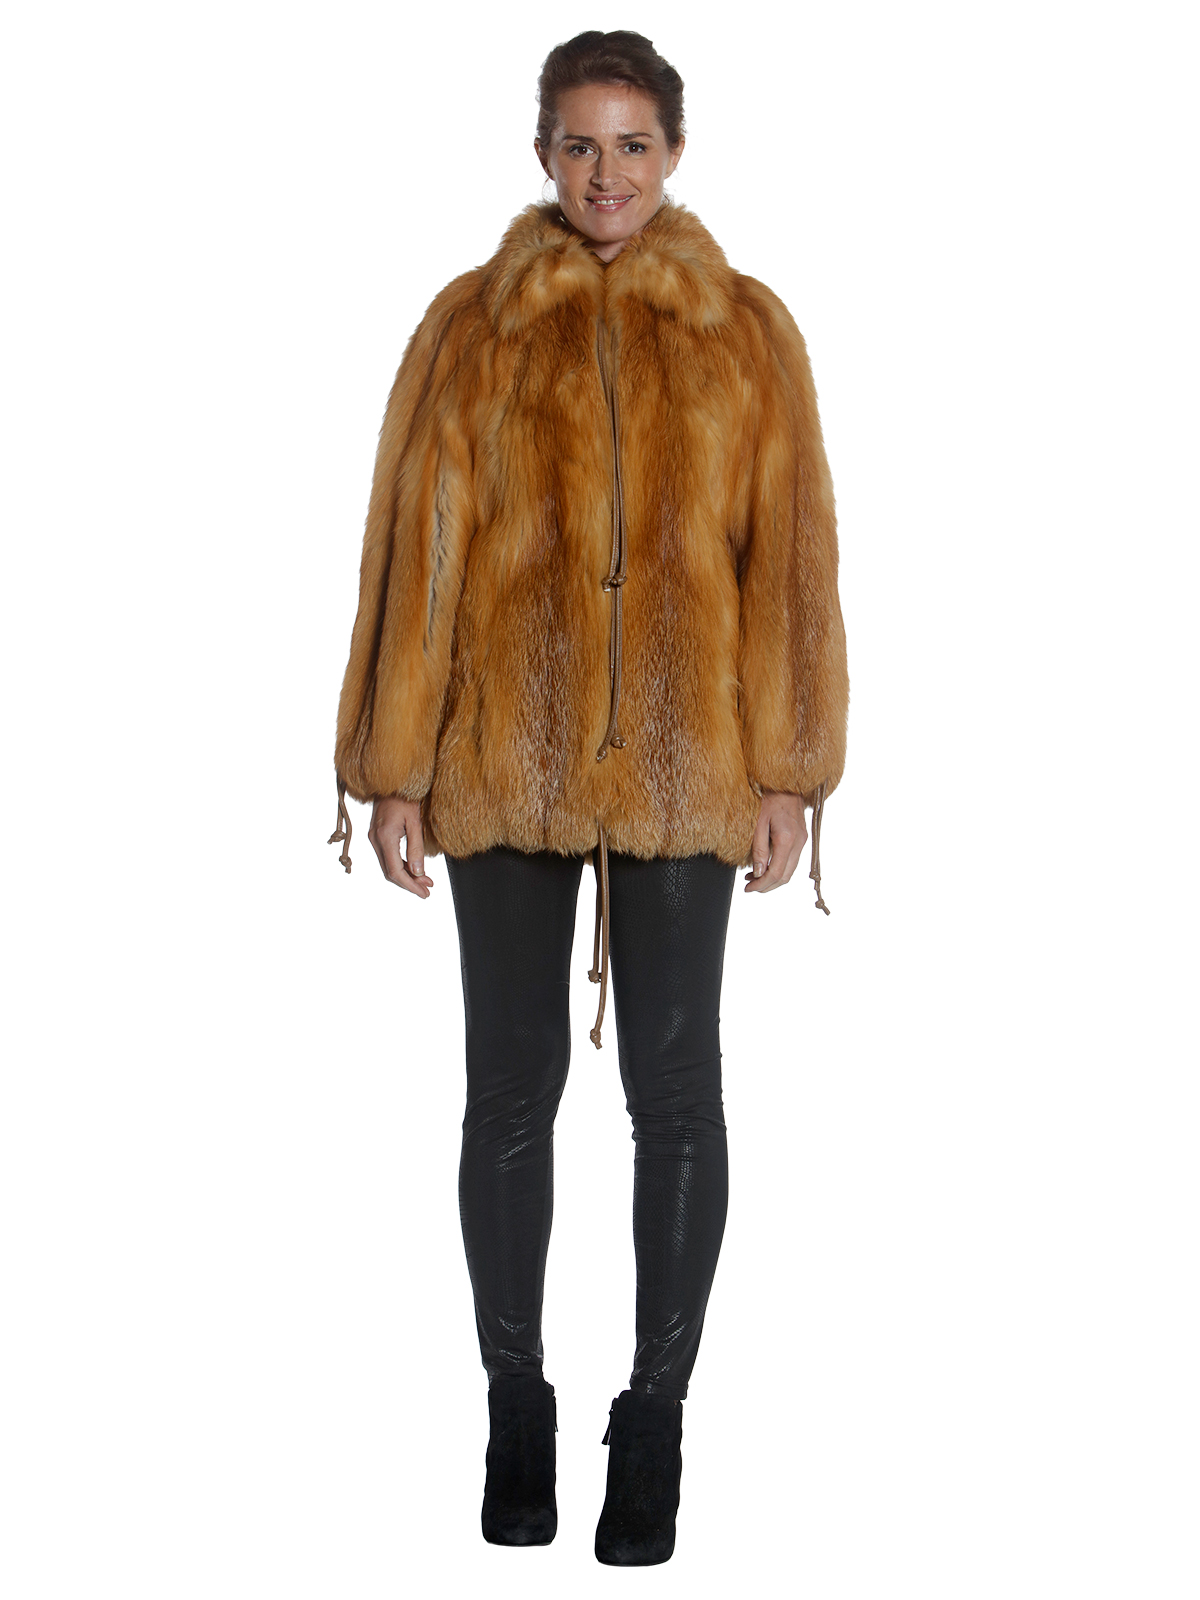 Woman's Red Fox Fur Jacket with Wing Collar